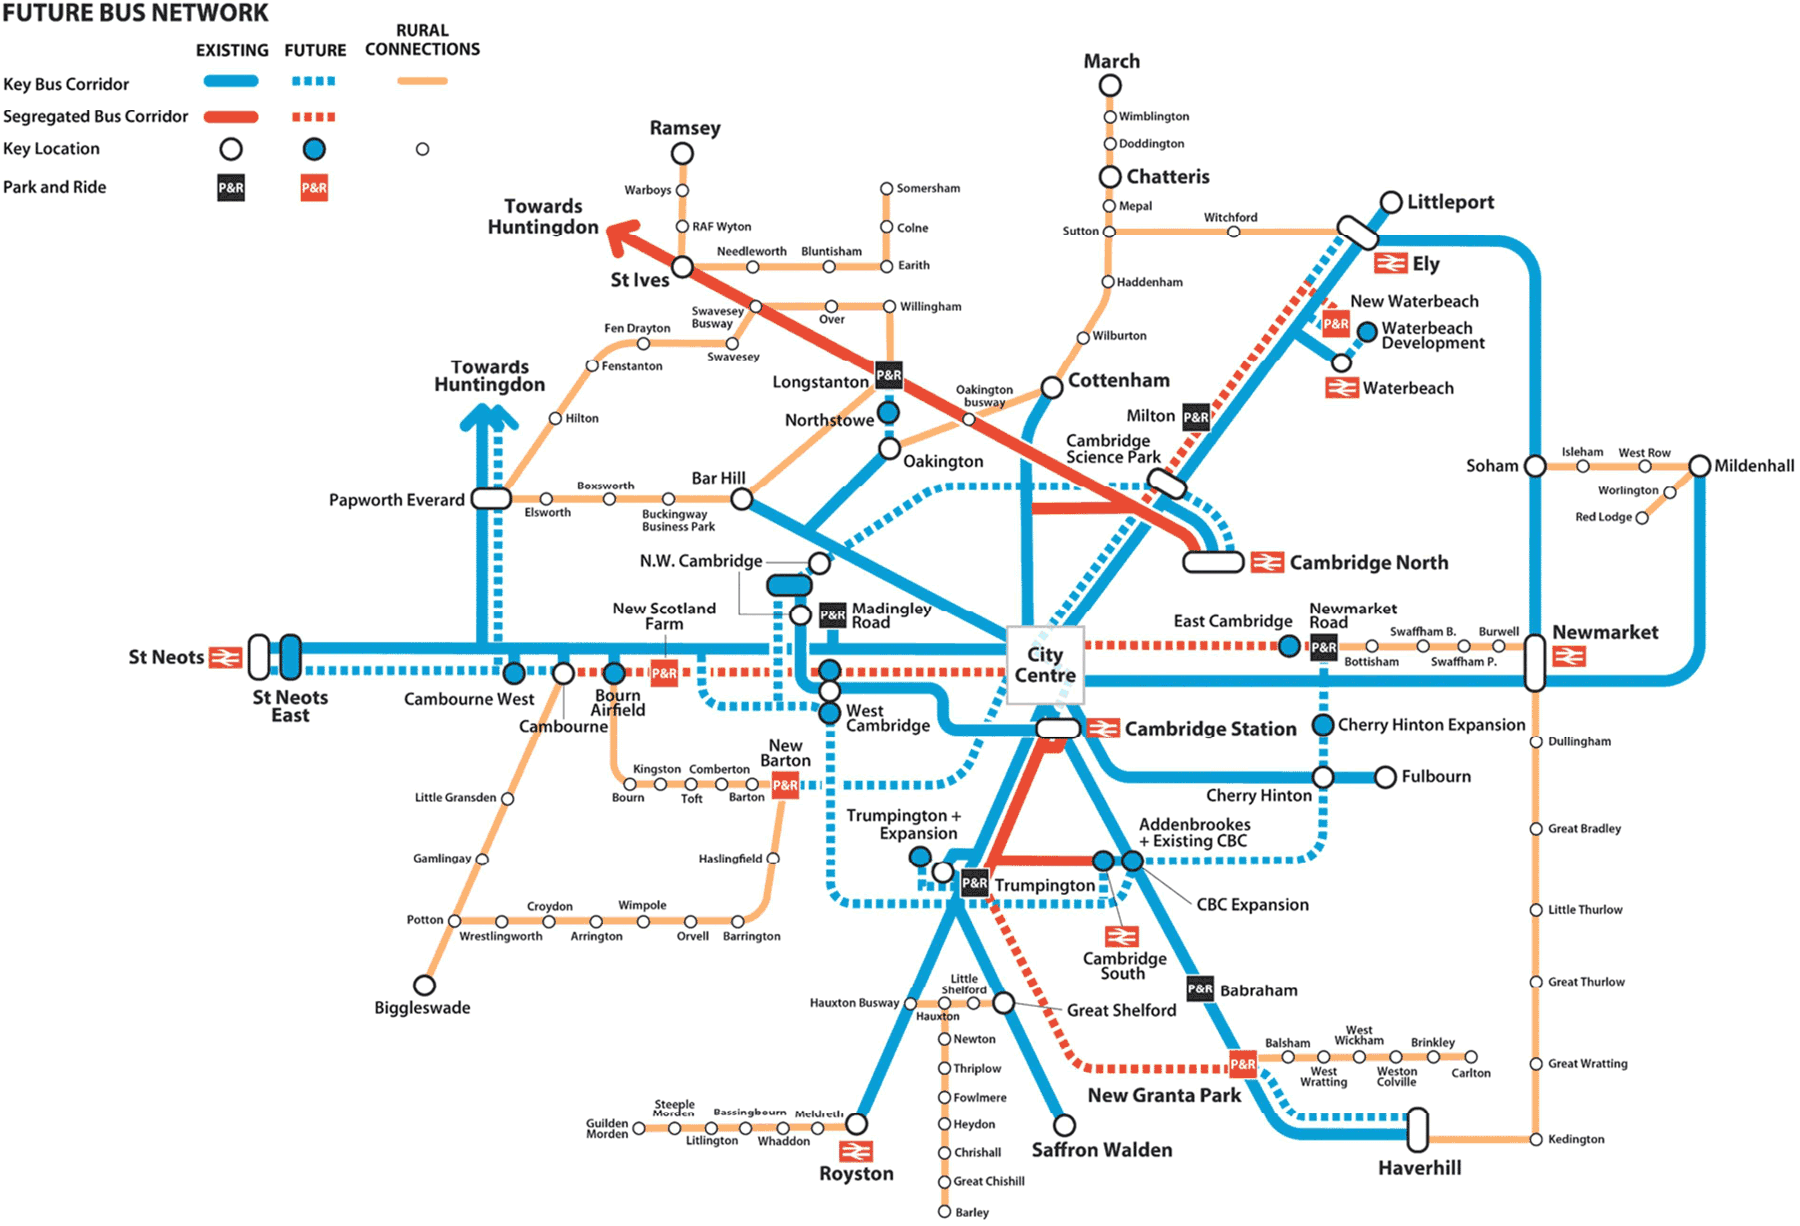 Greater Cambridge Partnership's proposed Future Bus Network